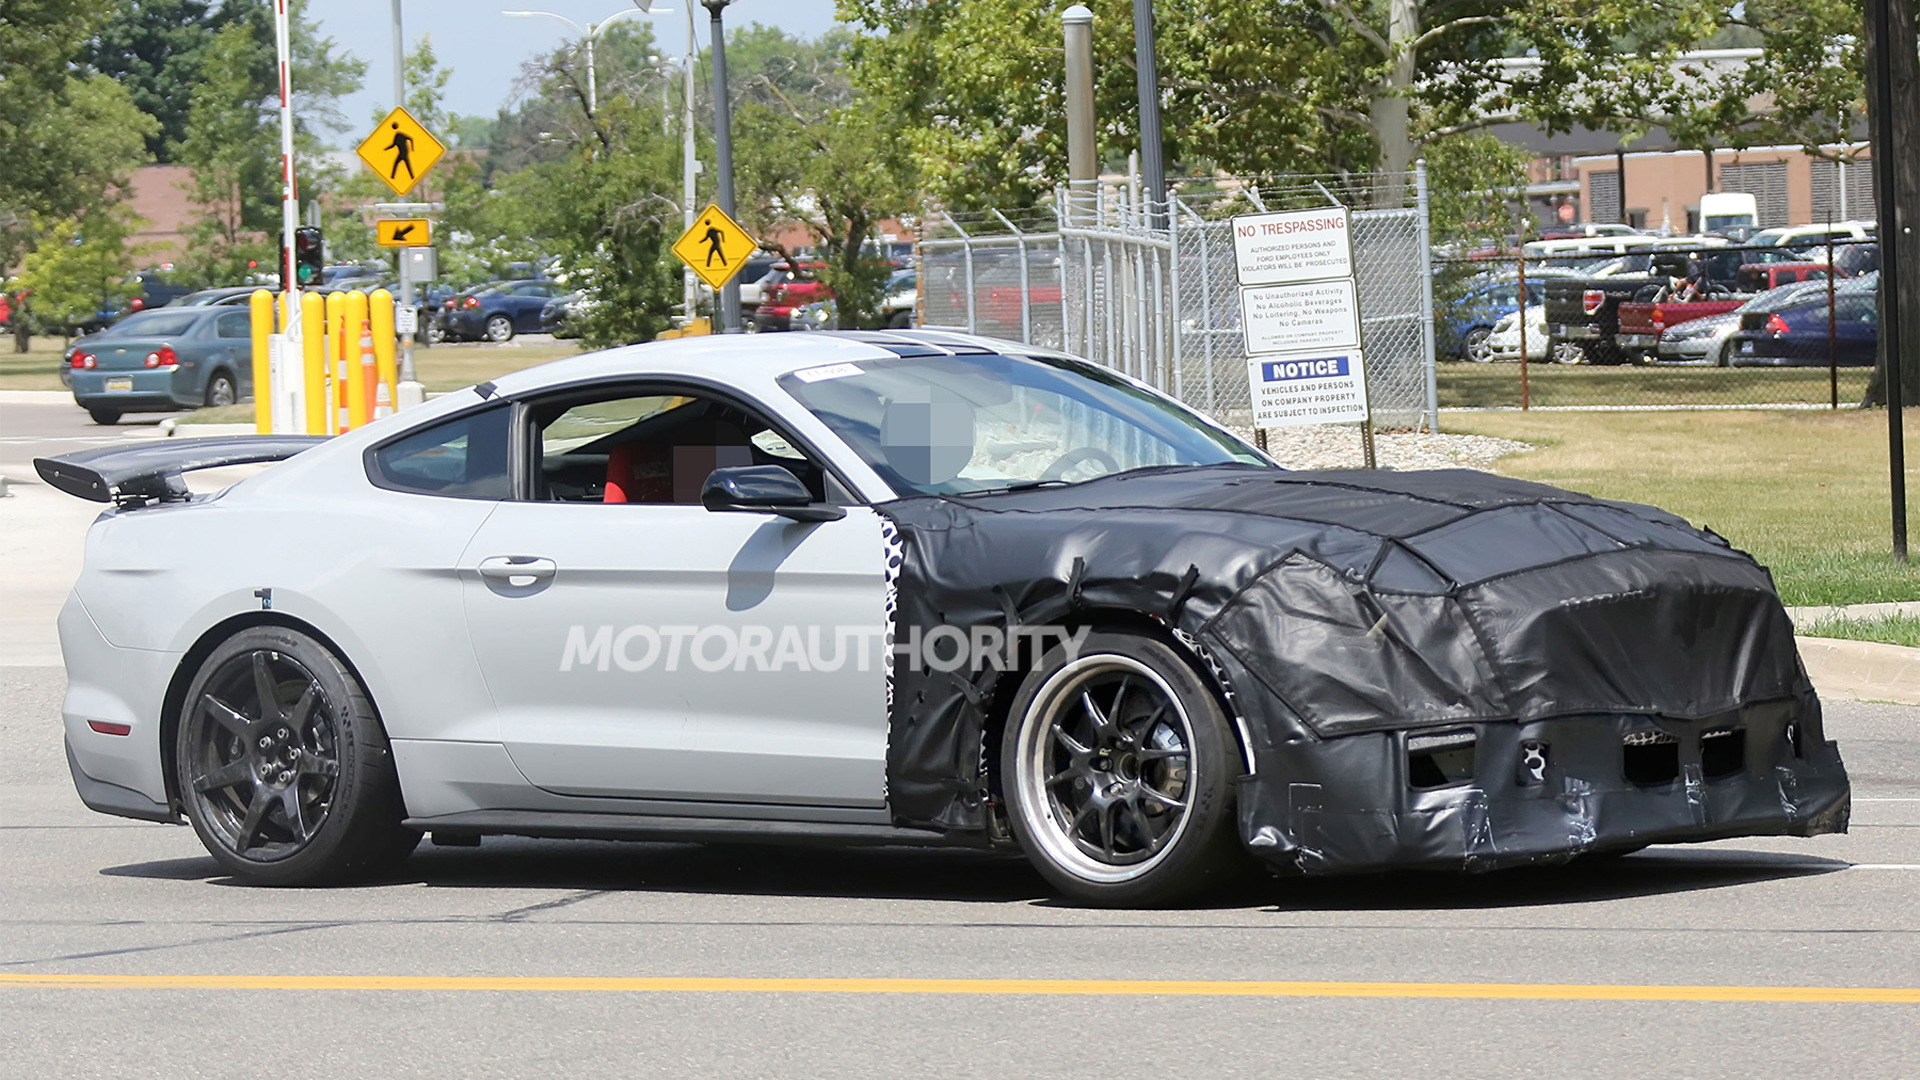 2020 Ford Mustang Shelby GT500 spy shots - Image via S. Baldauf/SB-Medien